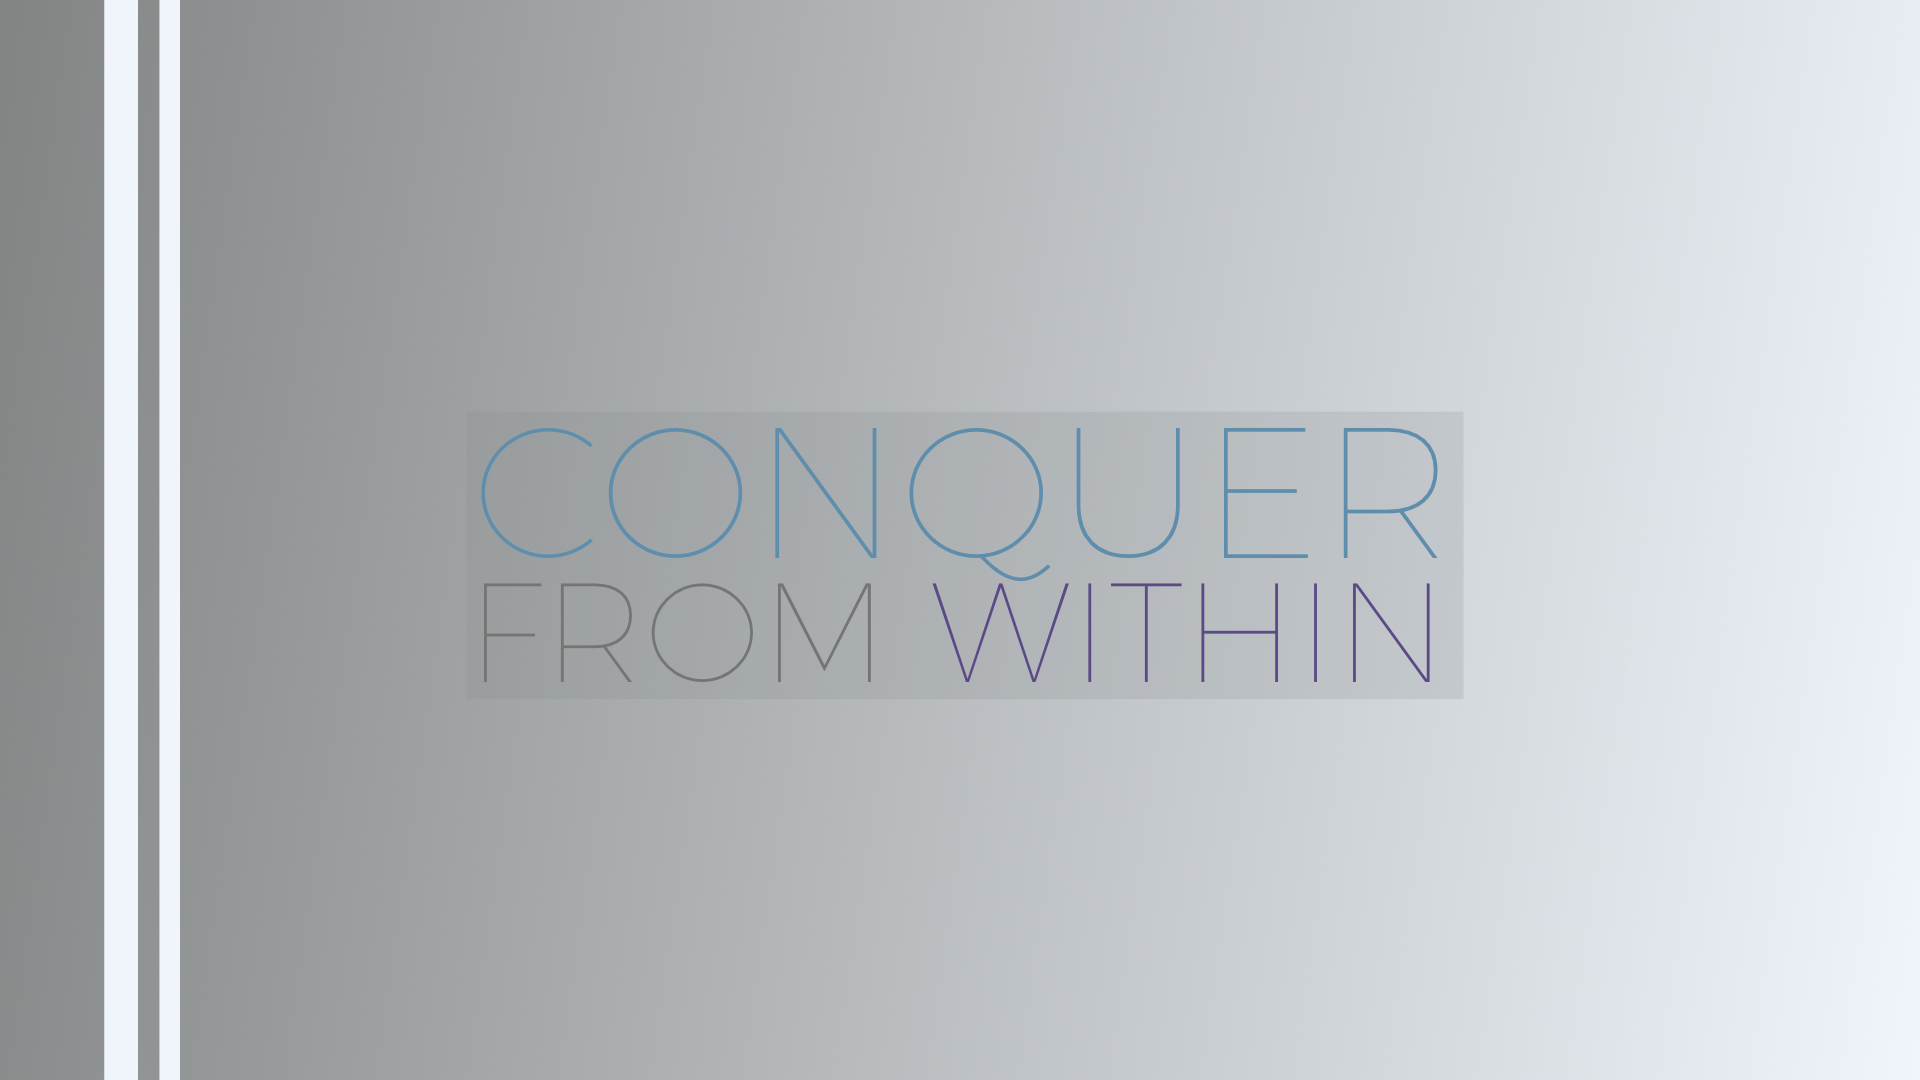 CONQUER FROM WITHIN.001.jpeg